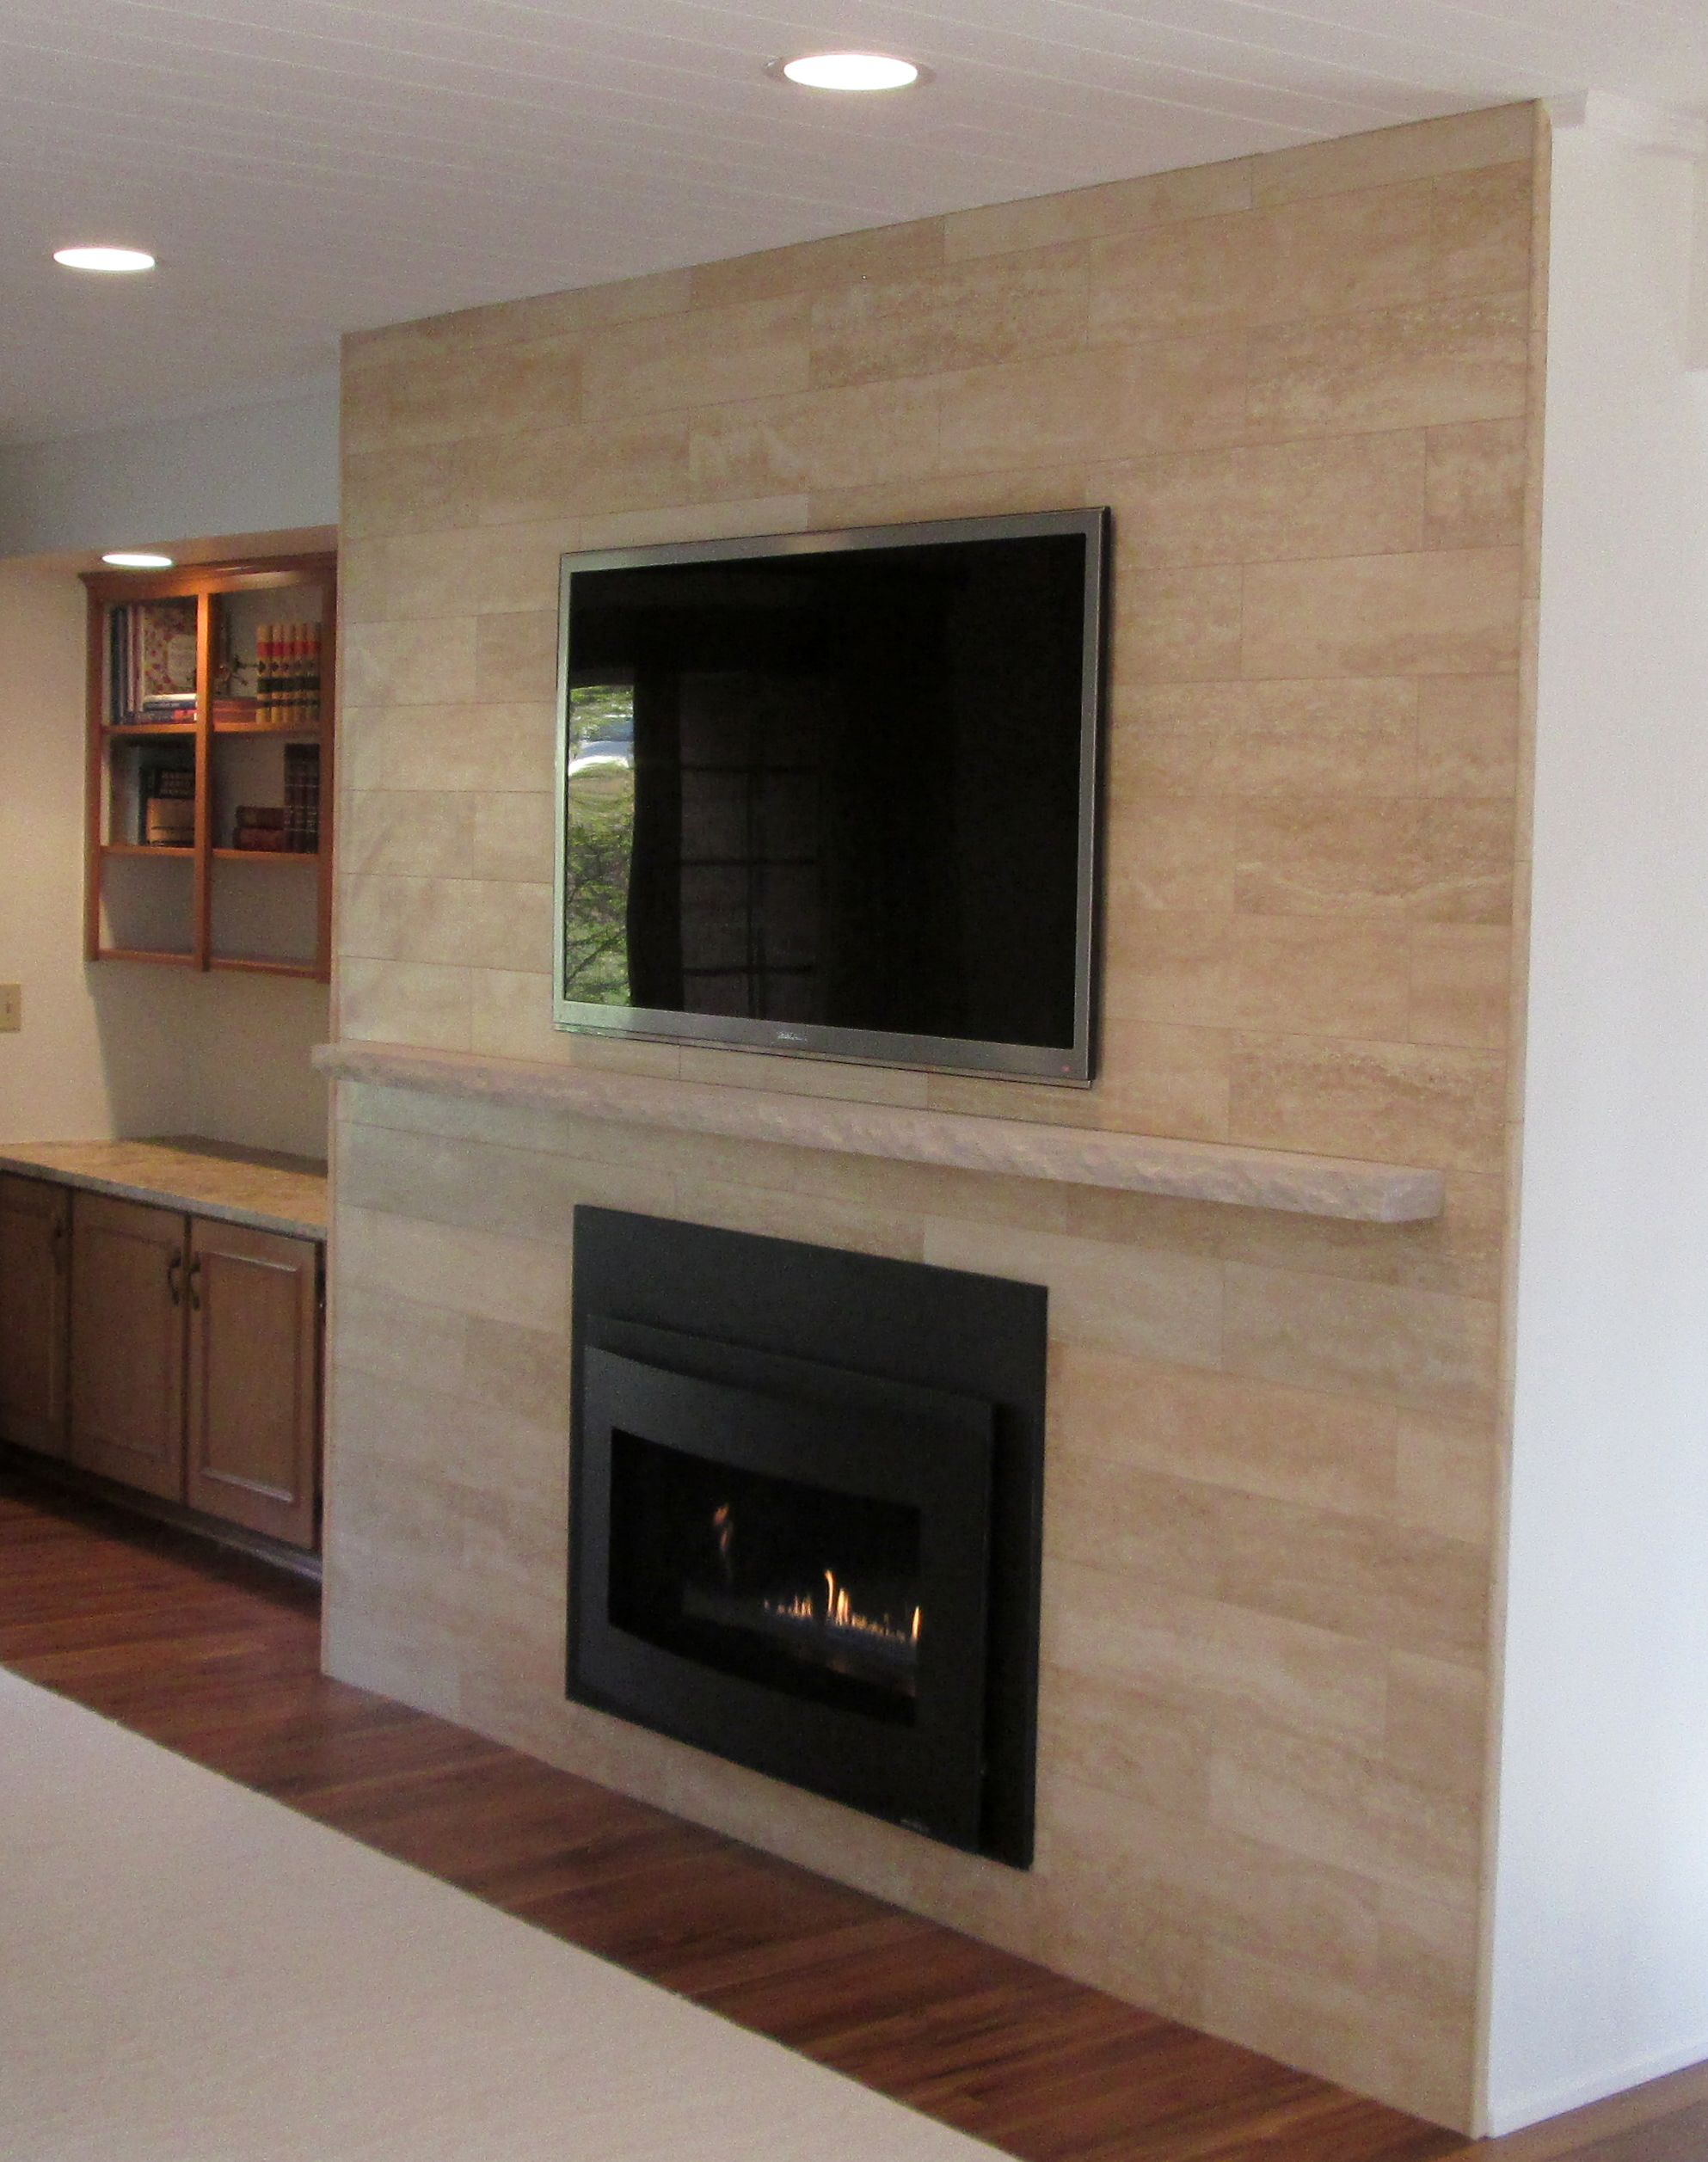 Sant Agostino 6 X 24 Plank Travertine Tile In Beige On Fireplace